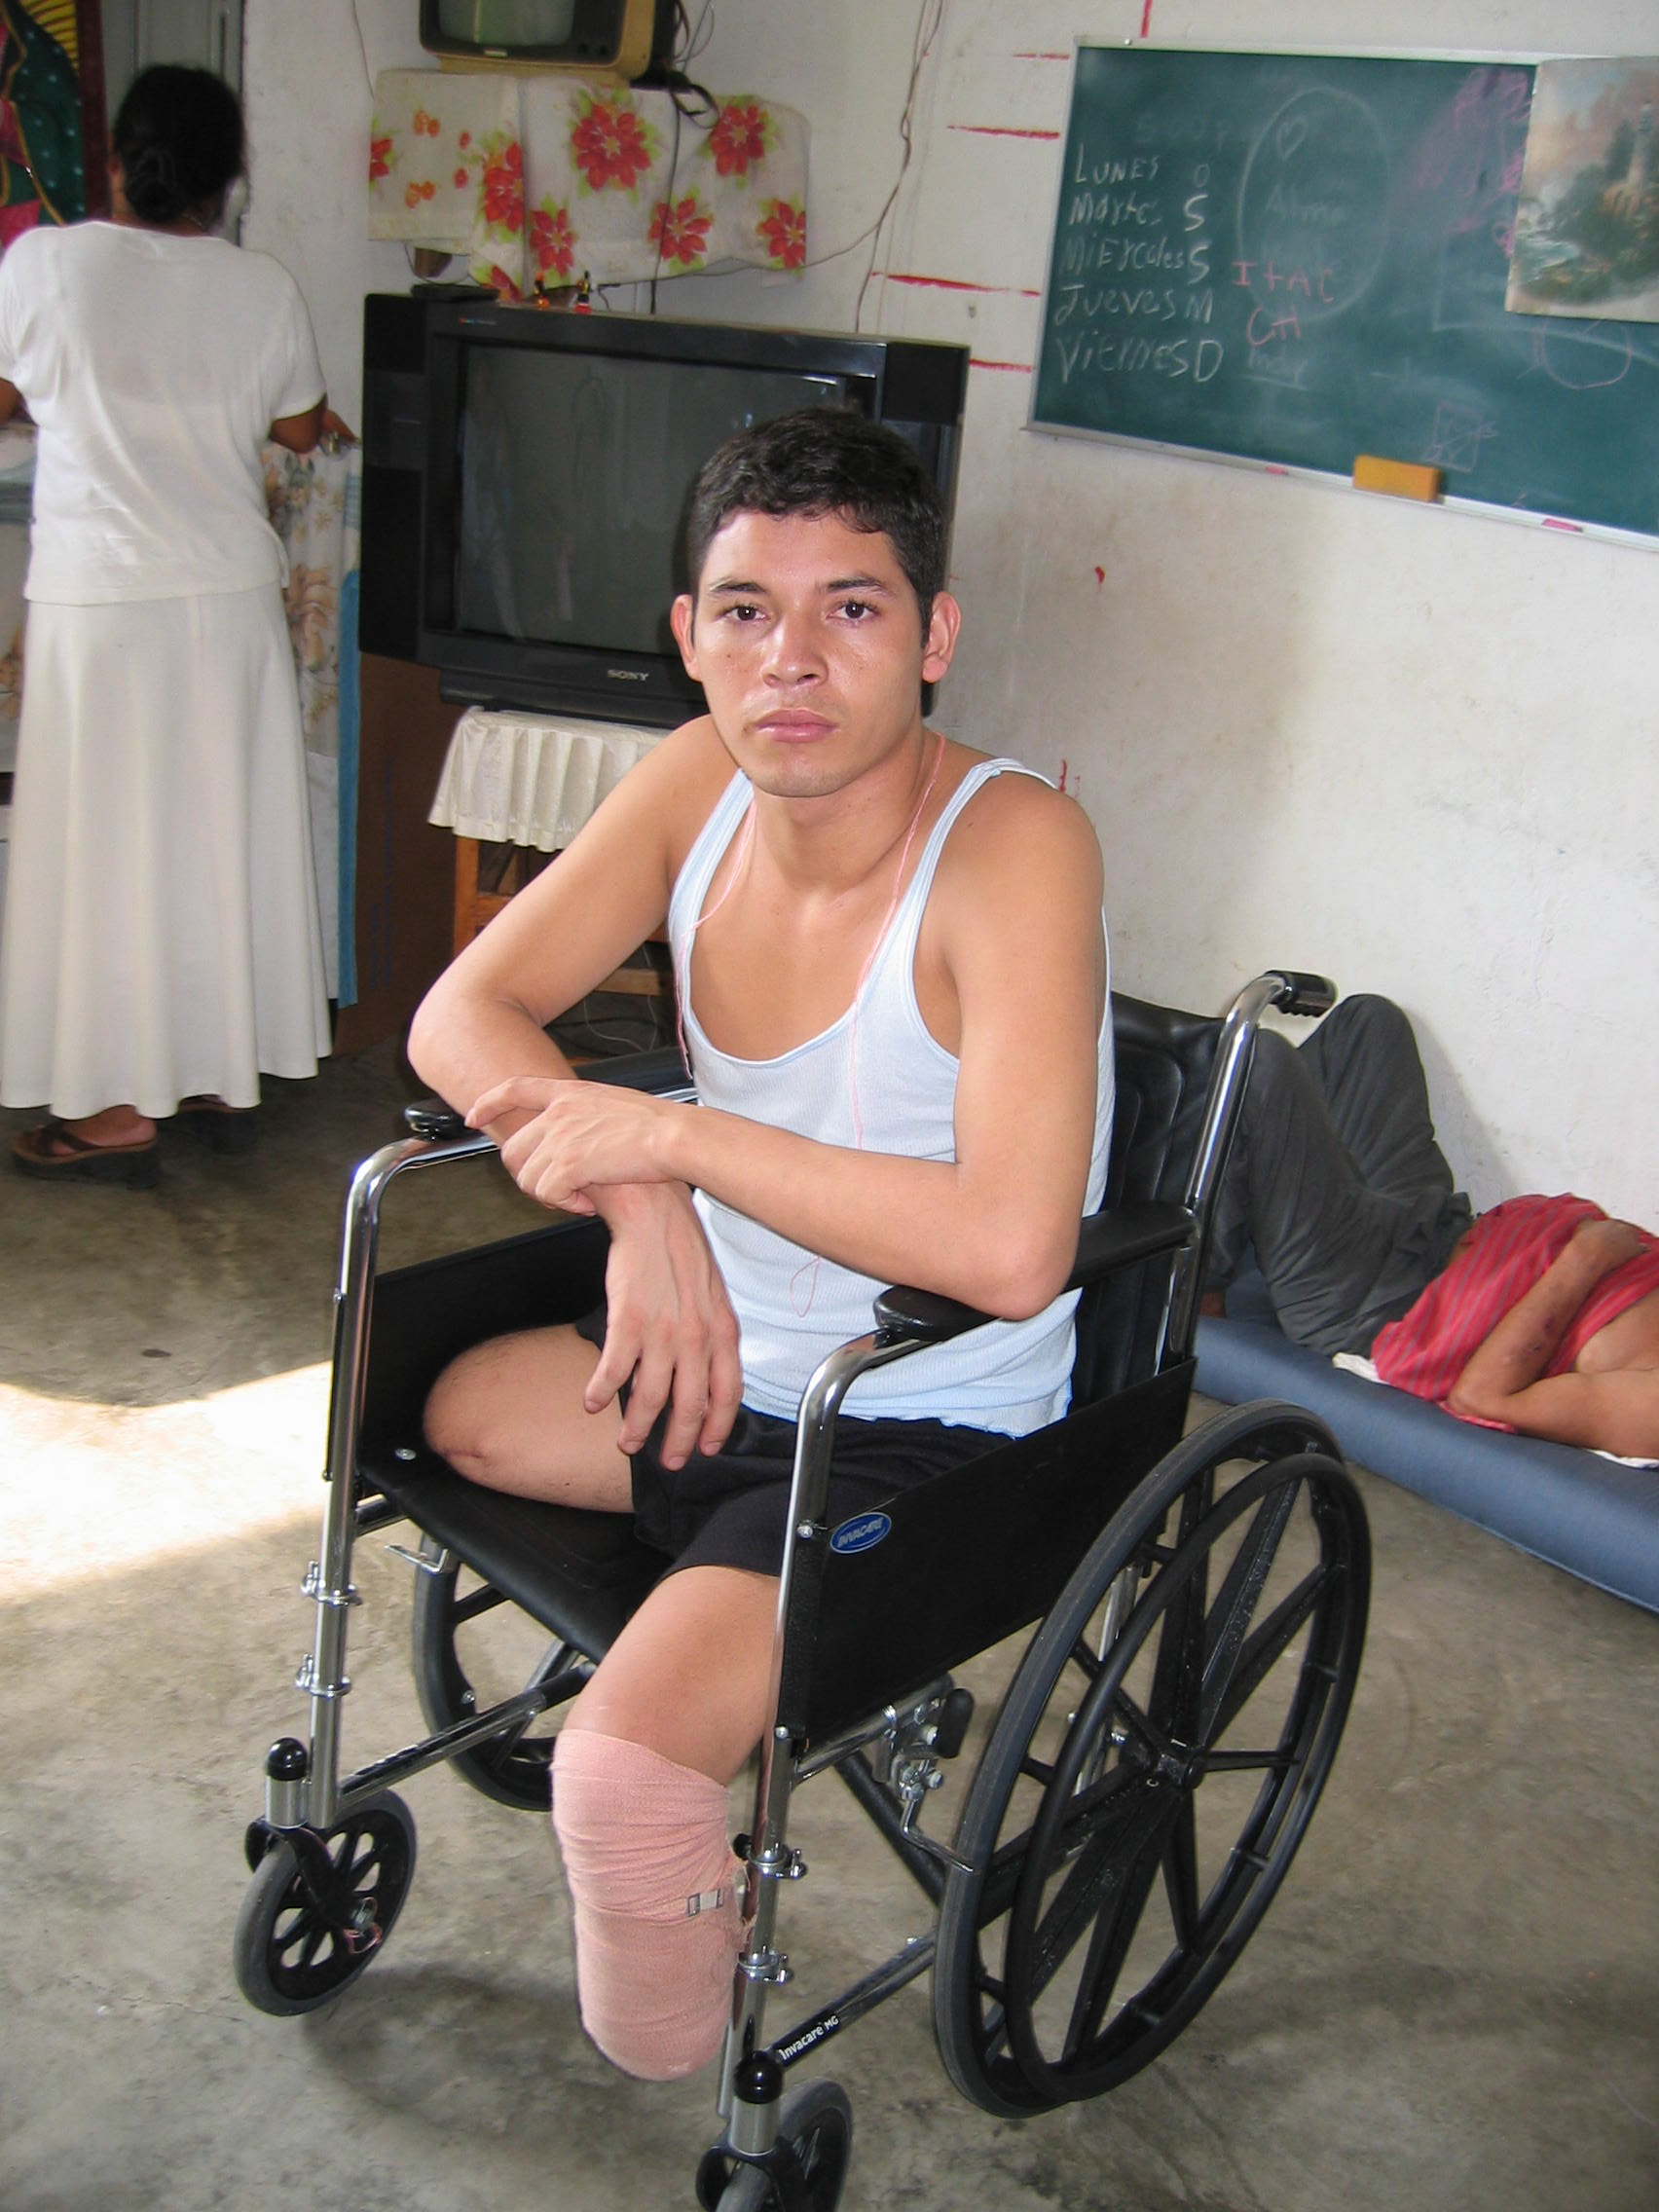 Tránsito Encarnación Martínes Hernández, from Honduras, lost part of both legs to a train.